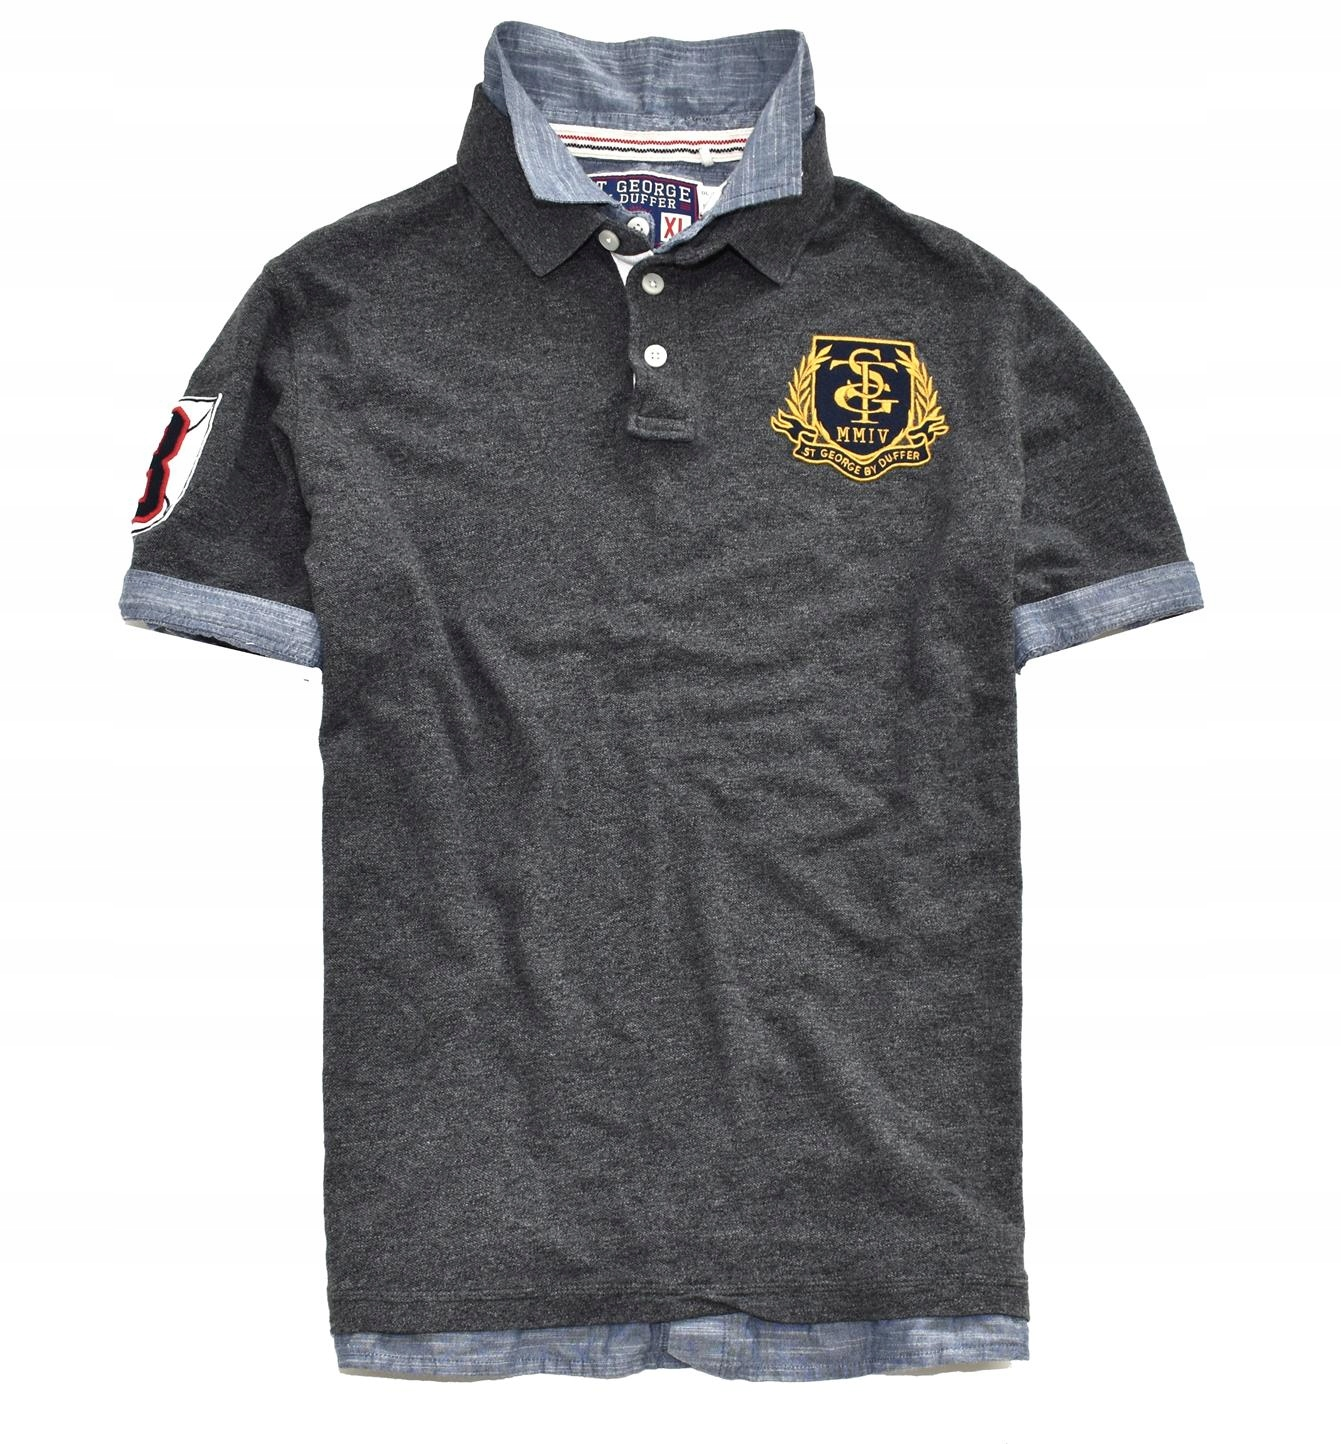 MM 86 ST GEORGE_ORYGINAL RUGBY SPORT POLO_xl